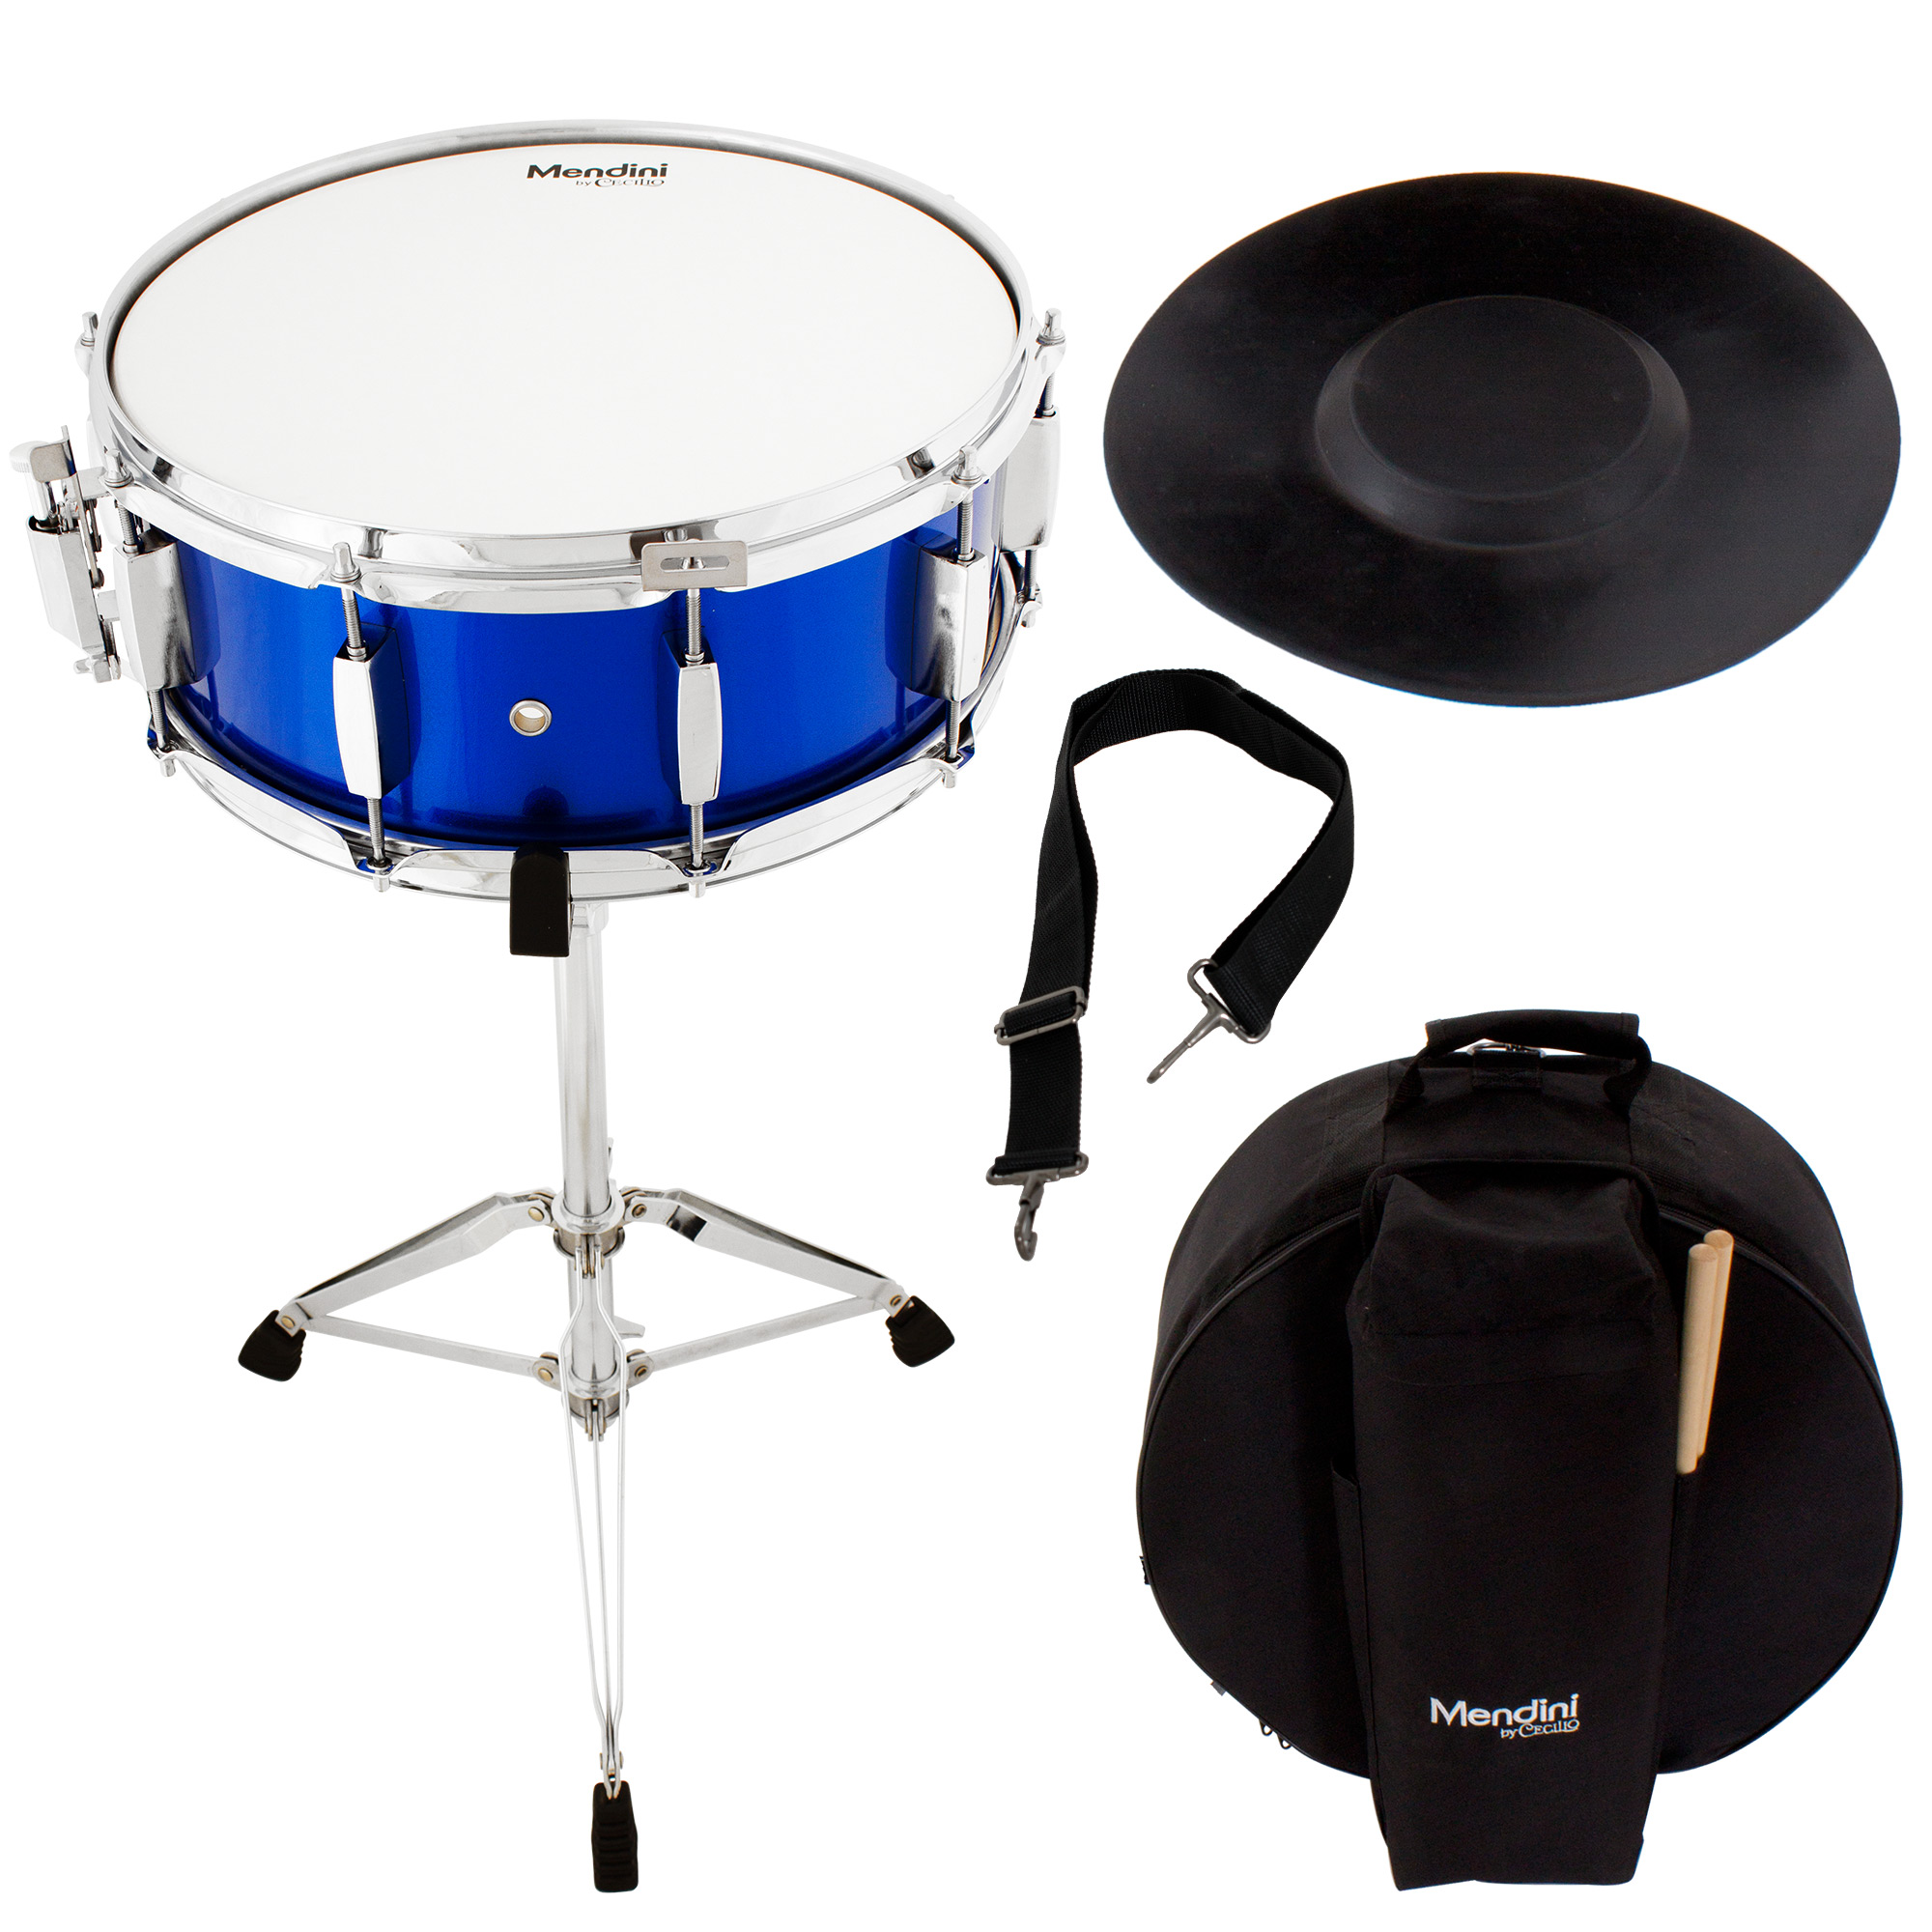 Mendini by Cecilio Student Snare Drum Set with Gig Bag, Sticks, Stand and Practice Pad Kit, Blue